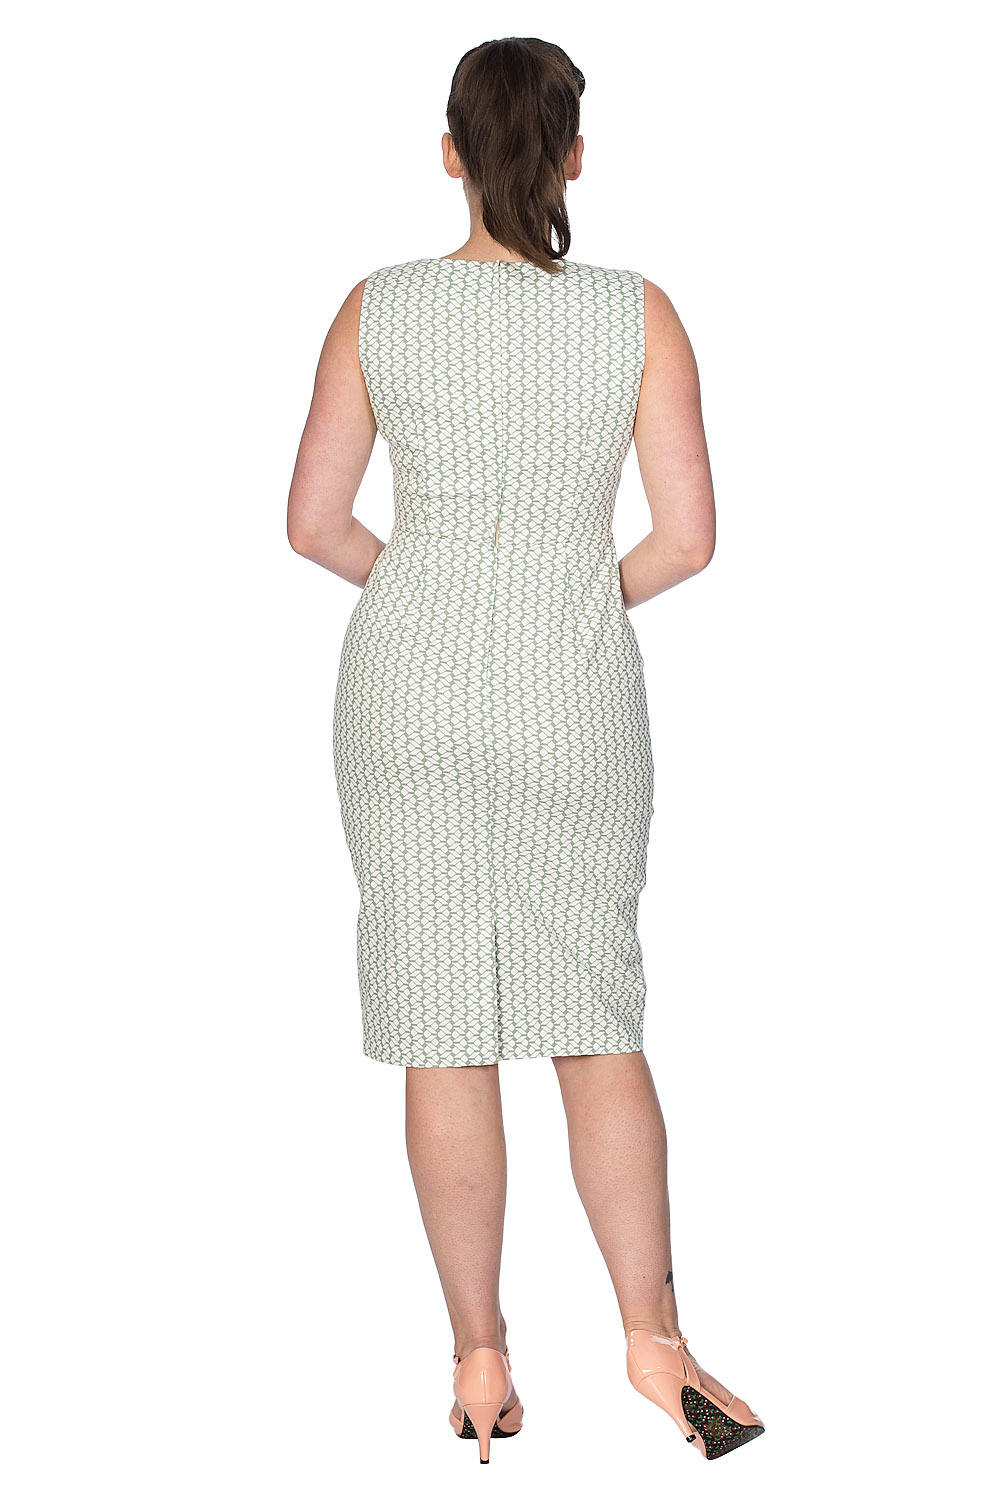 Banned Retro Sexy 60s Tile Wiggle Dress in Mint